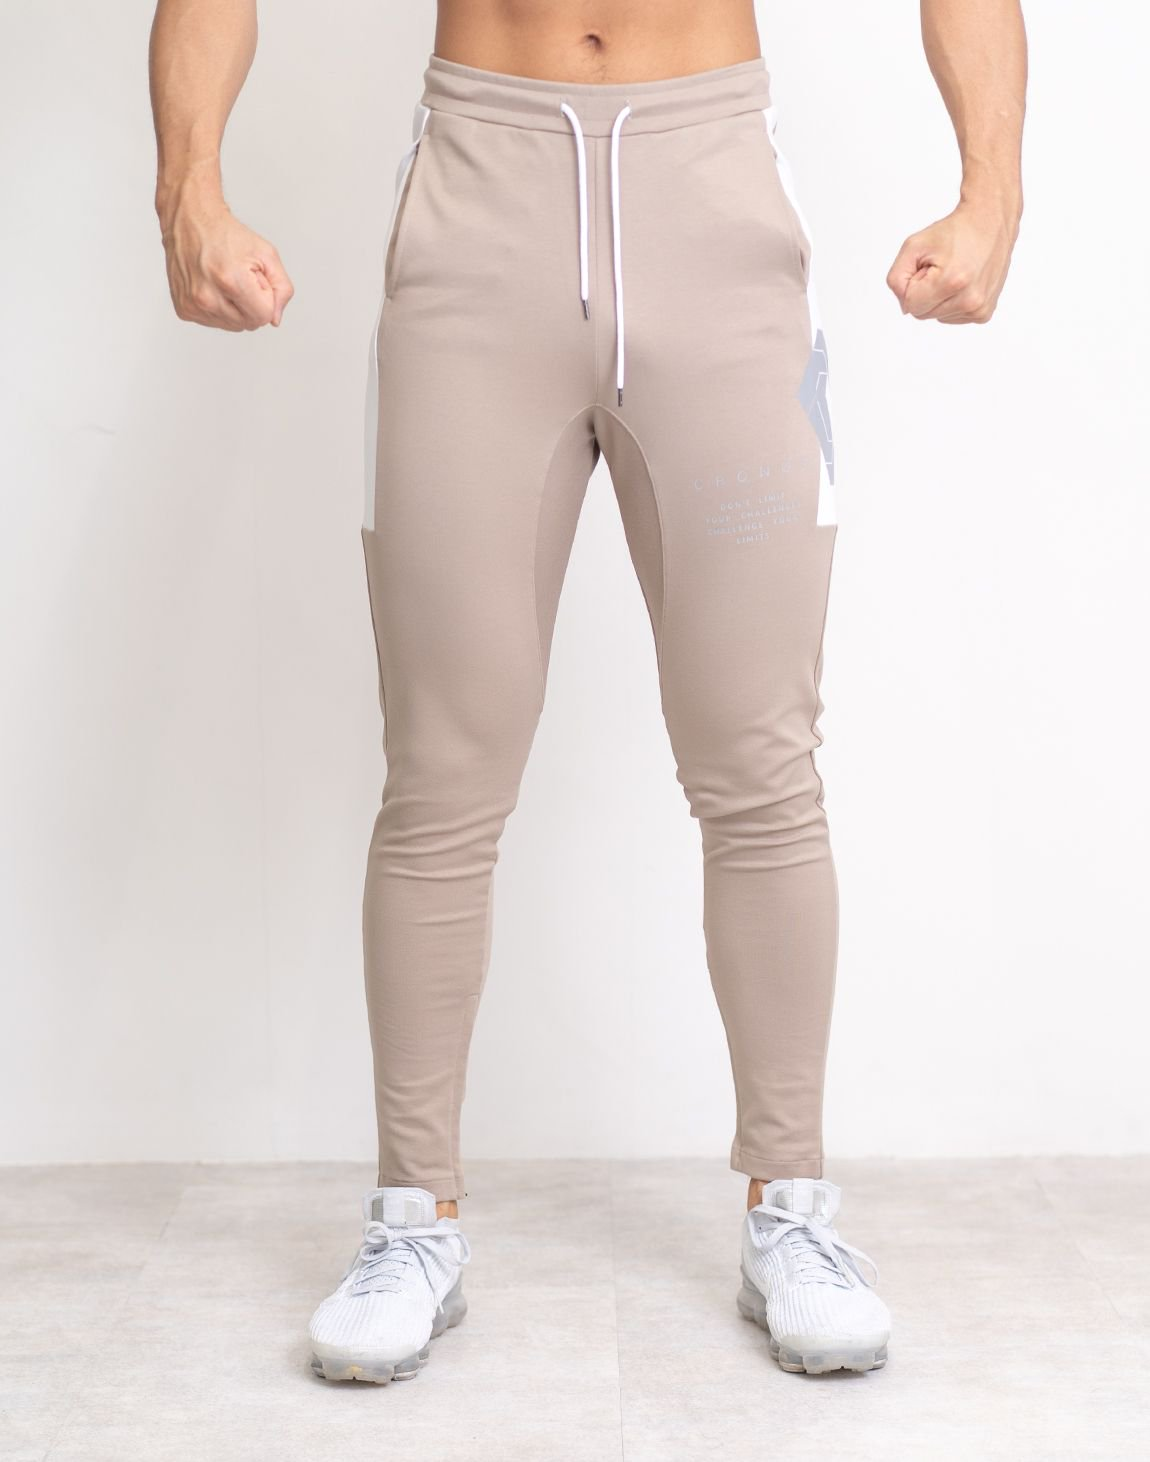 <img class='new_mark_img1' src='https://img.shop-pro.jp/img/new/icons1.gif' style='border:none;display:inline;margin:0px;padding:0px;width:auto;' />CRONOS SIDE BIG LOGO PANTS【BEIGE】